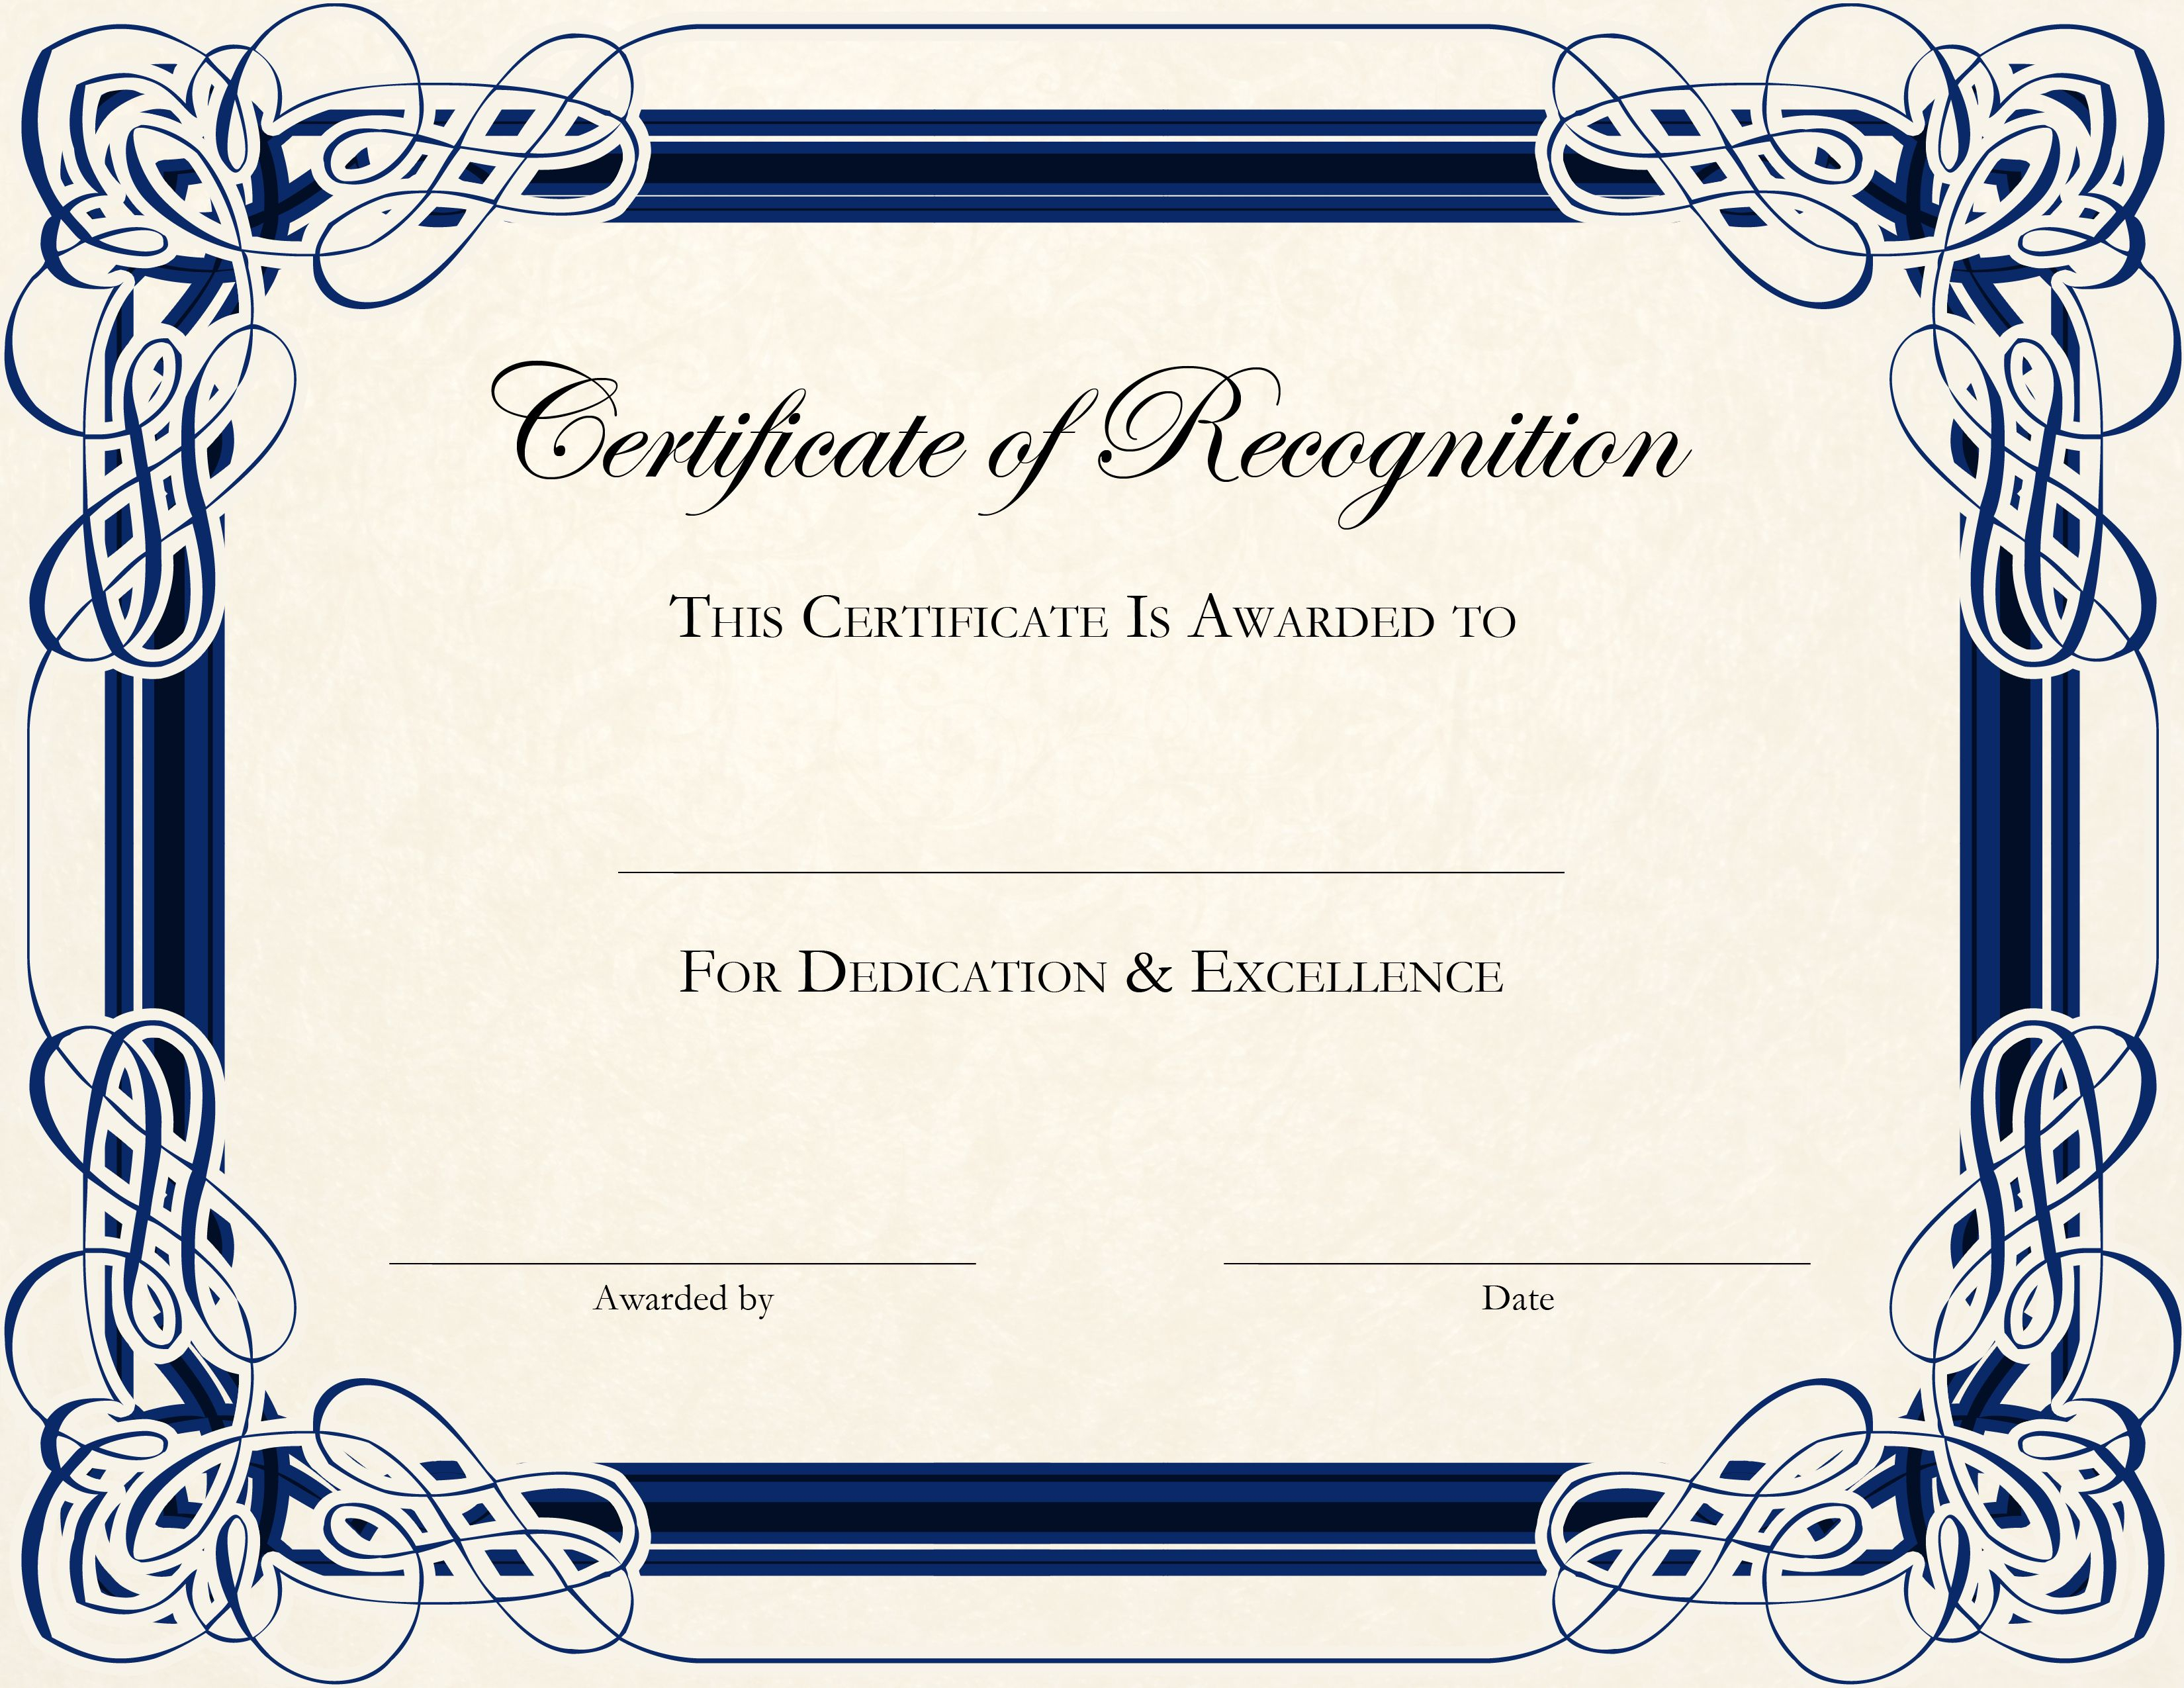 Certificate Template Designs Recognition Docs | Blankets Throughout School Certificate Templates Free